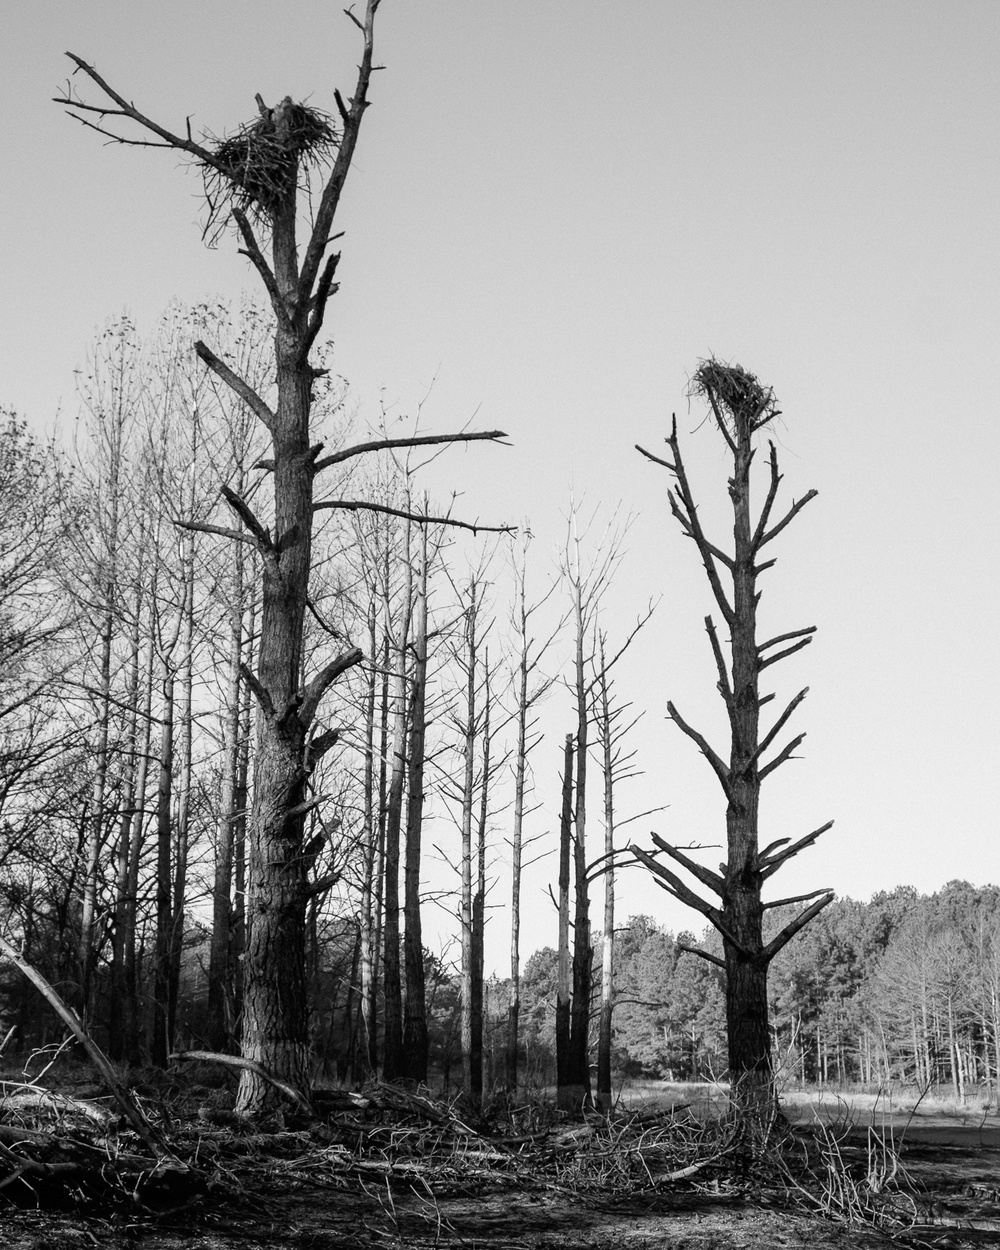 Jordan Lake, North Carolina, 2015-2.jpg